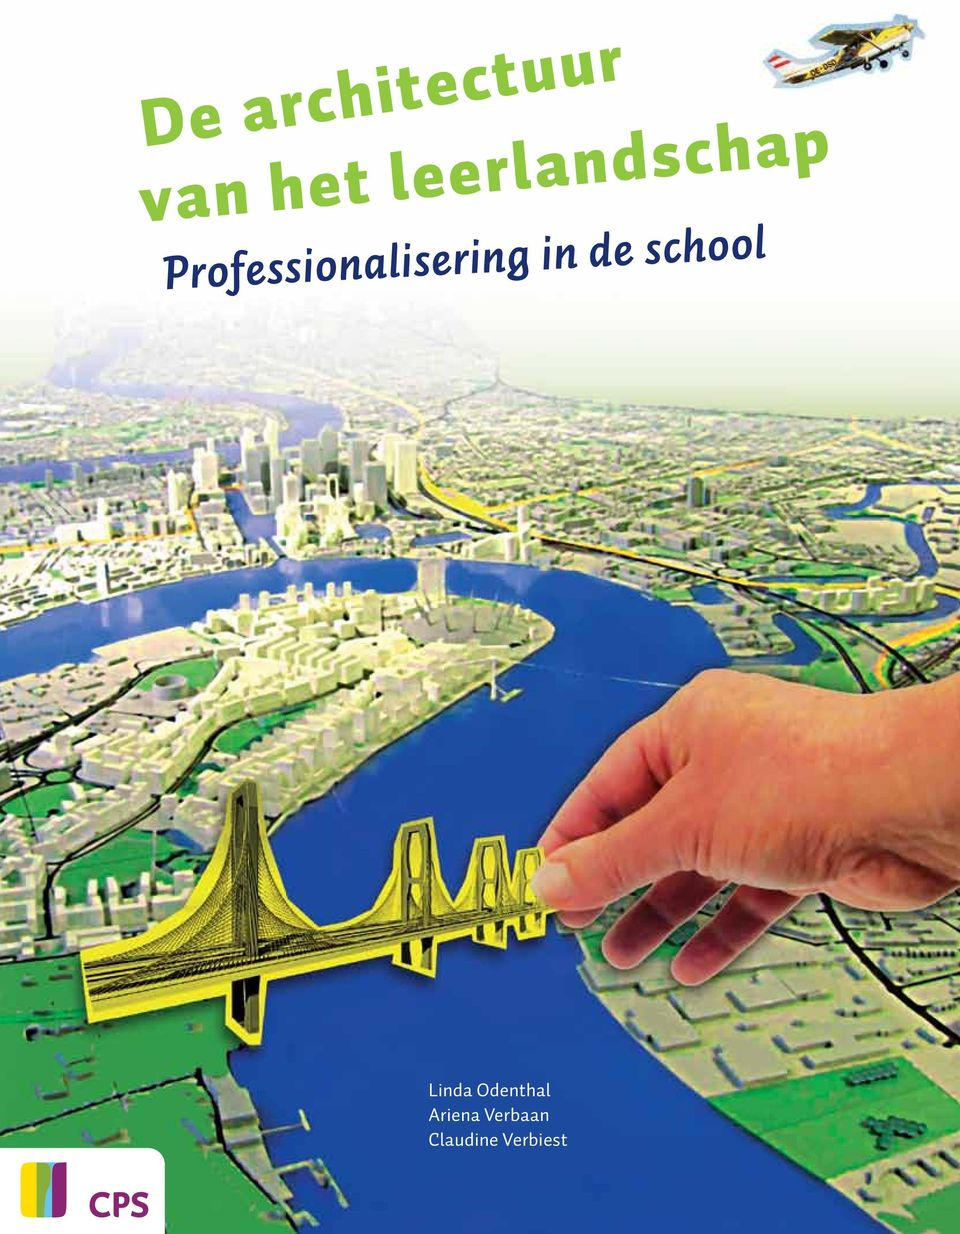 Professionalisering in de